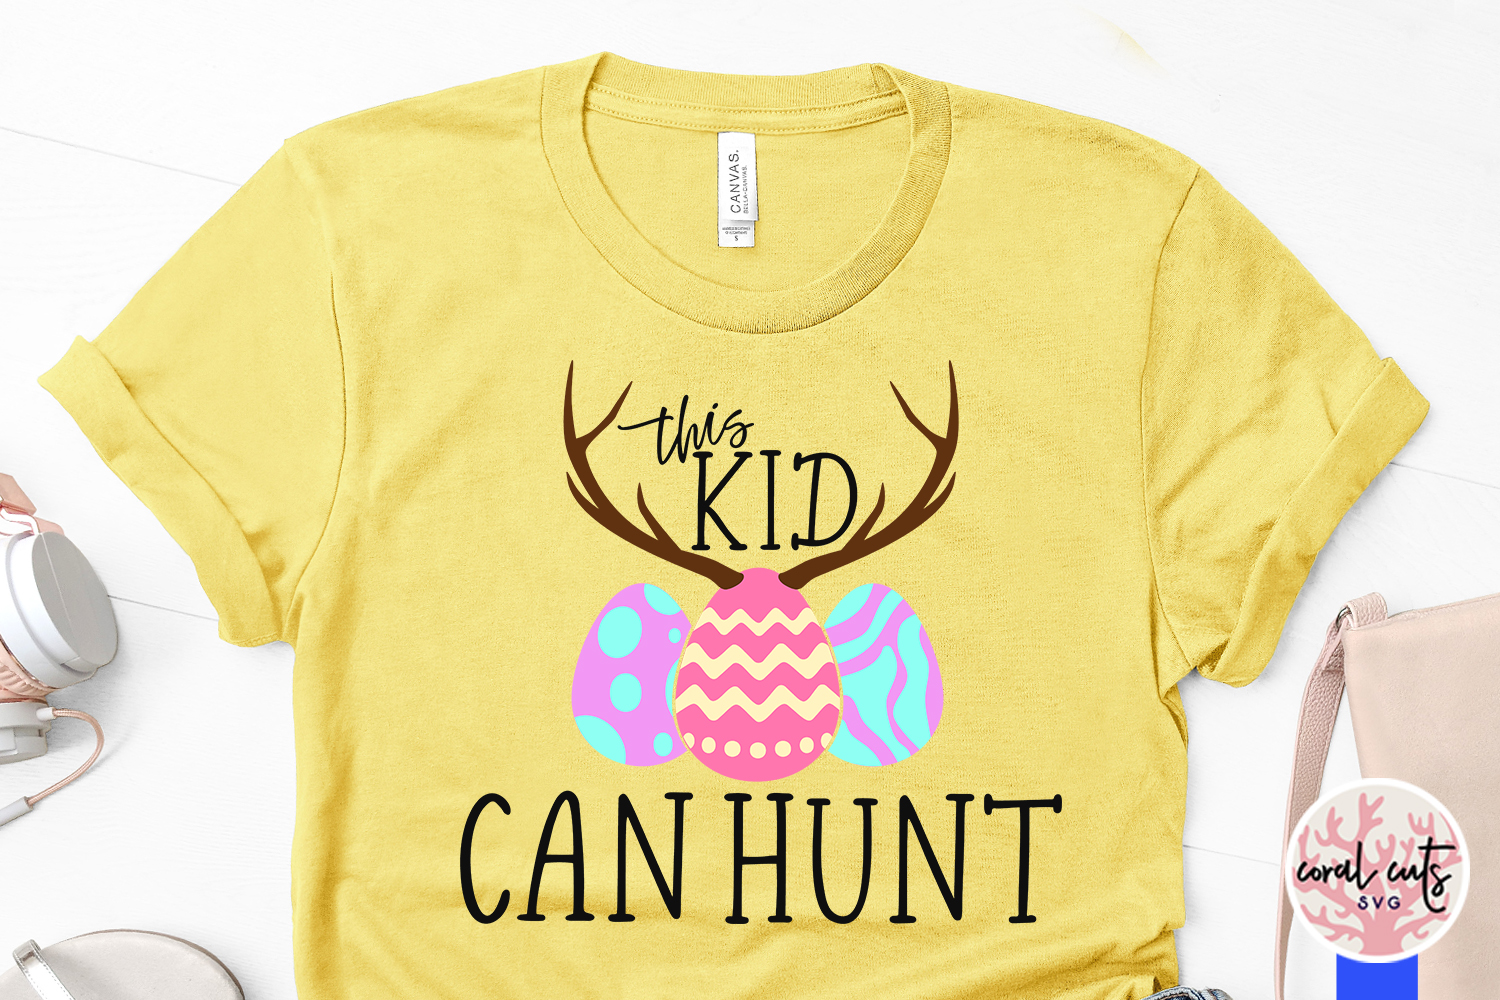 This kid can hunt - Easter SVG EPS DXF PNG Cutting File example image 3